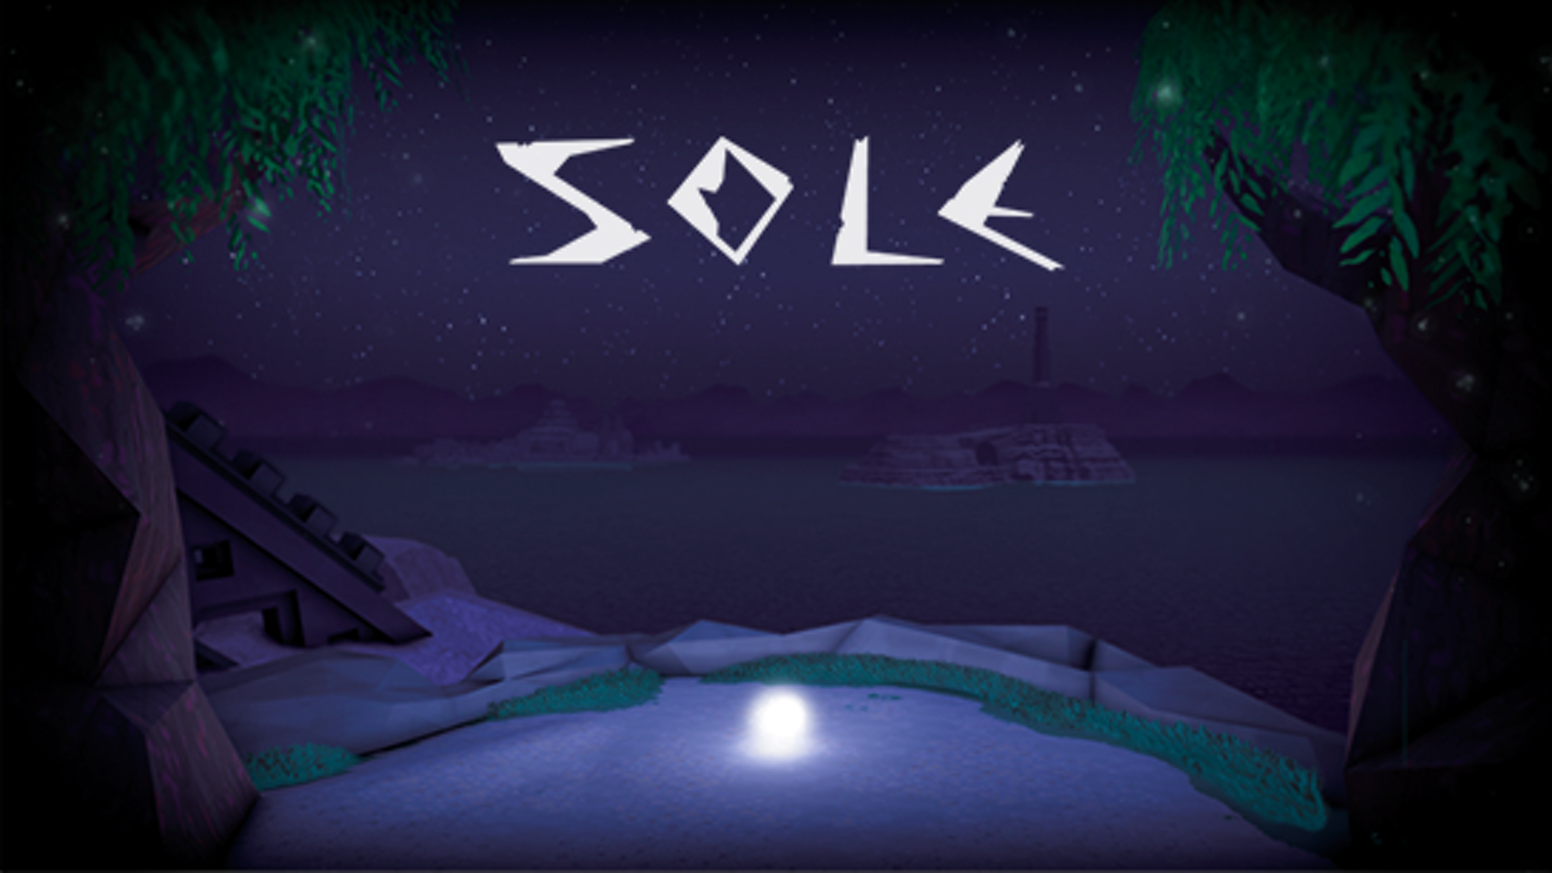 Explore the remnants of great cities and uncover the history of an ancient civilization on your journey through the dark world of Sole.